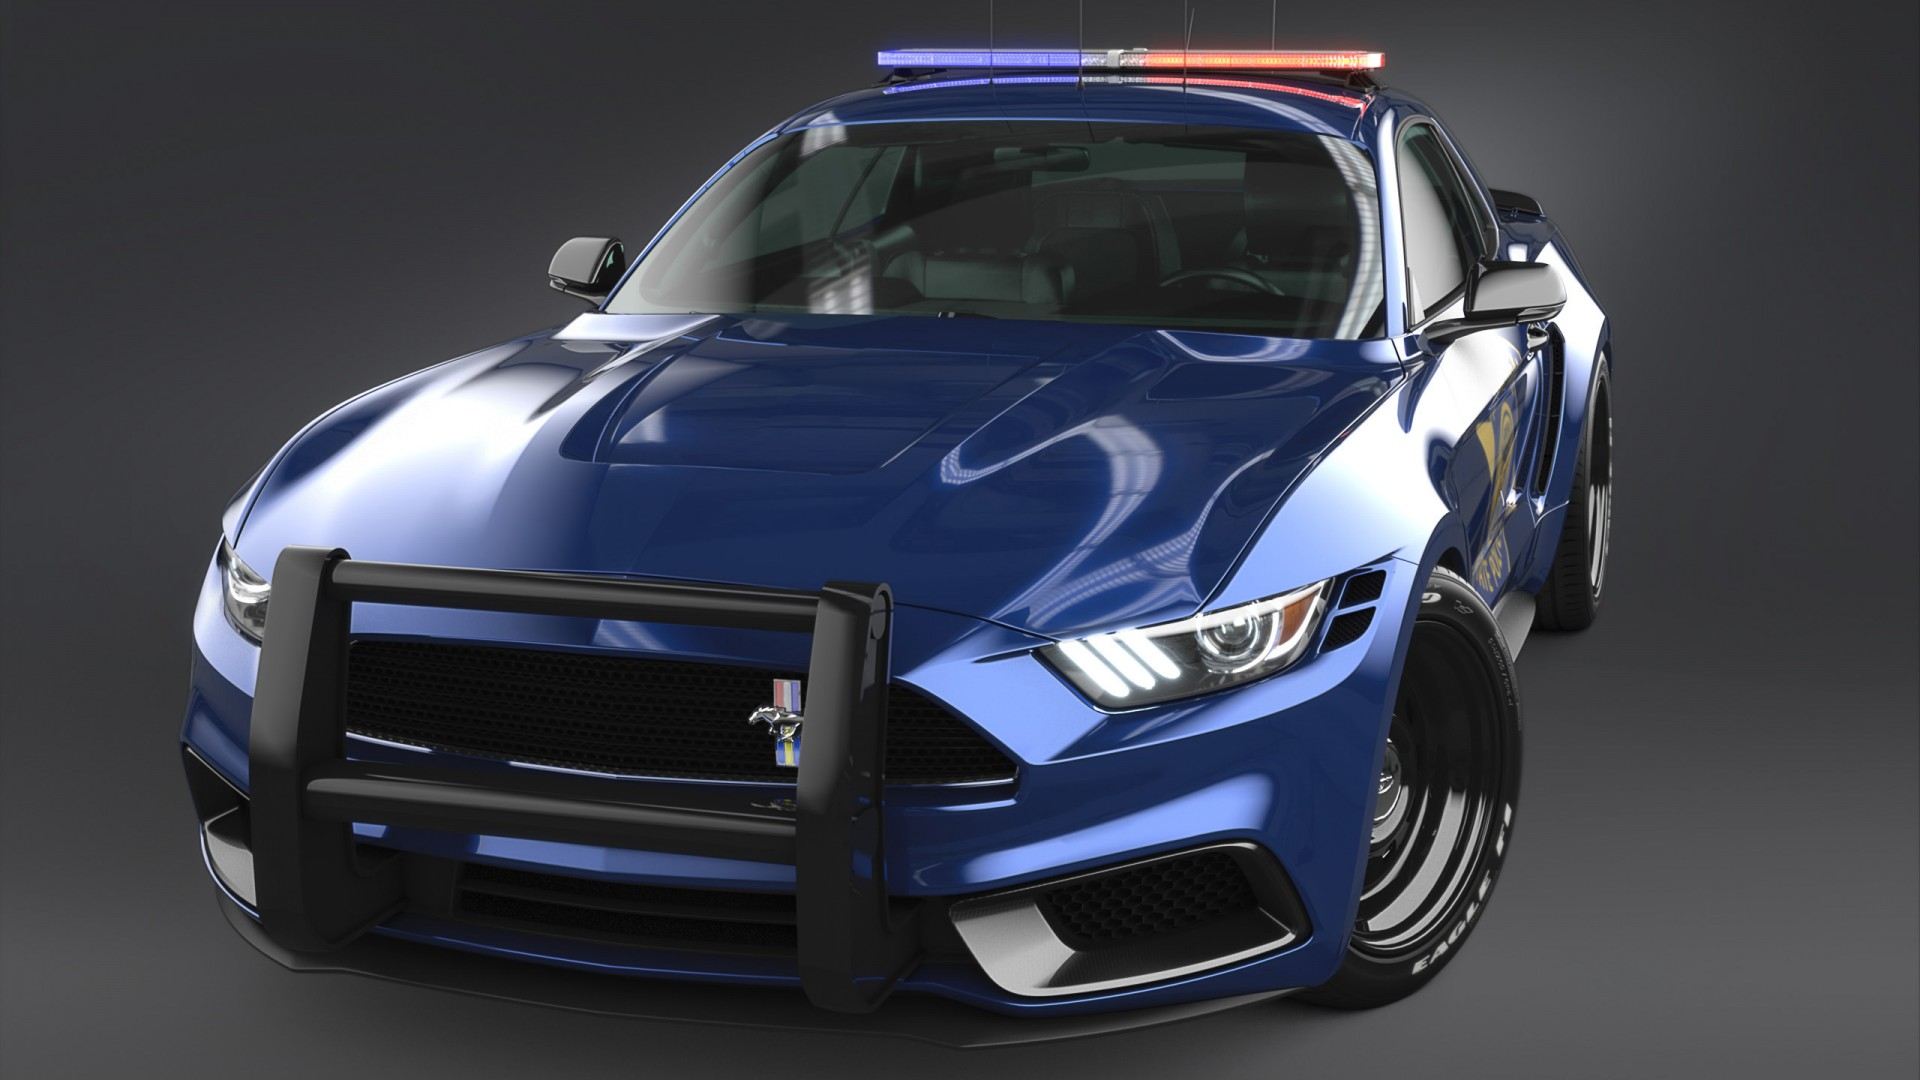 mustang ford police notchback wallpapers hd cars pc 2560 1080 1440 hdcarwallpapers 1920 tablet 1366 1600 tags